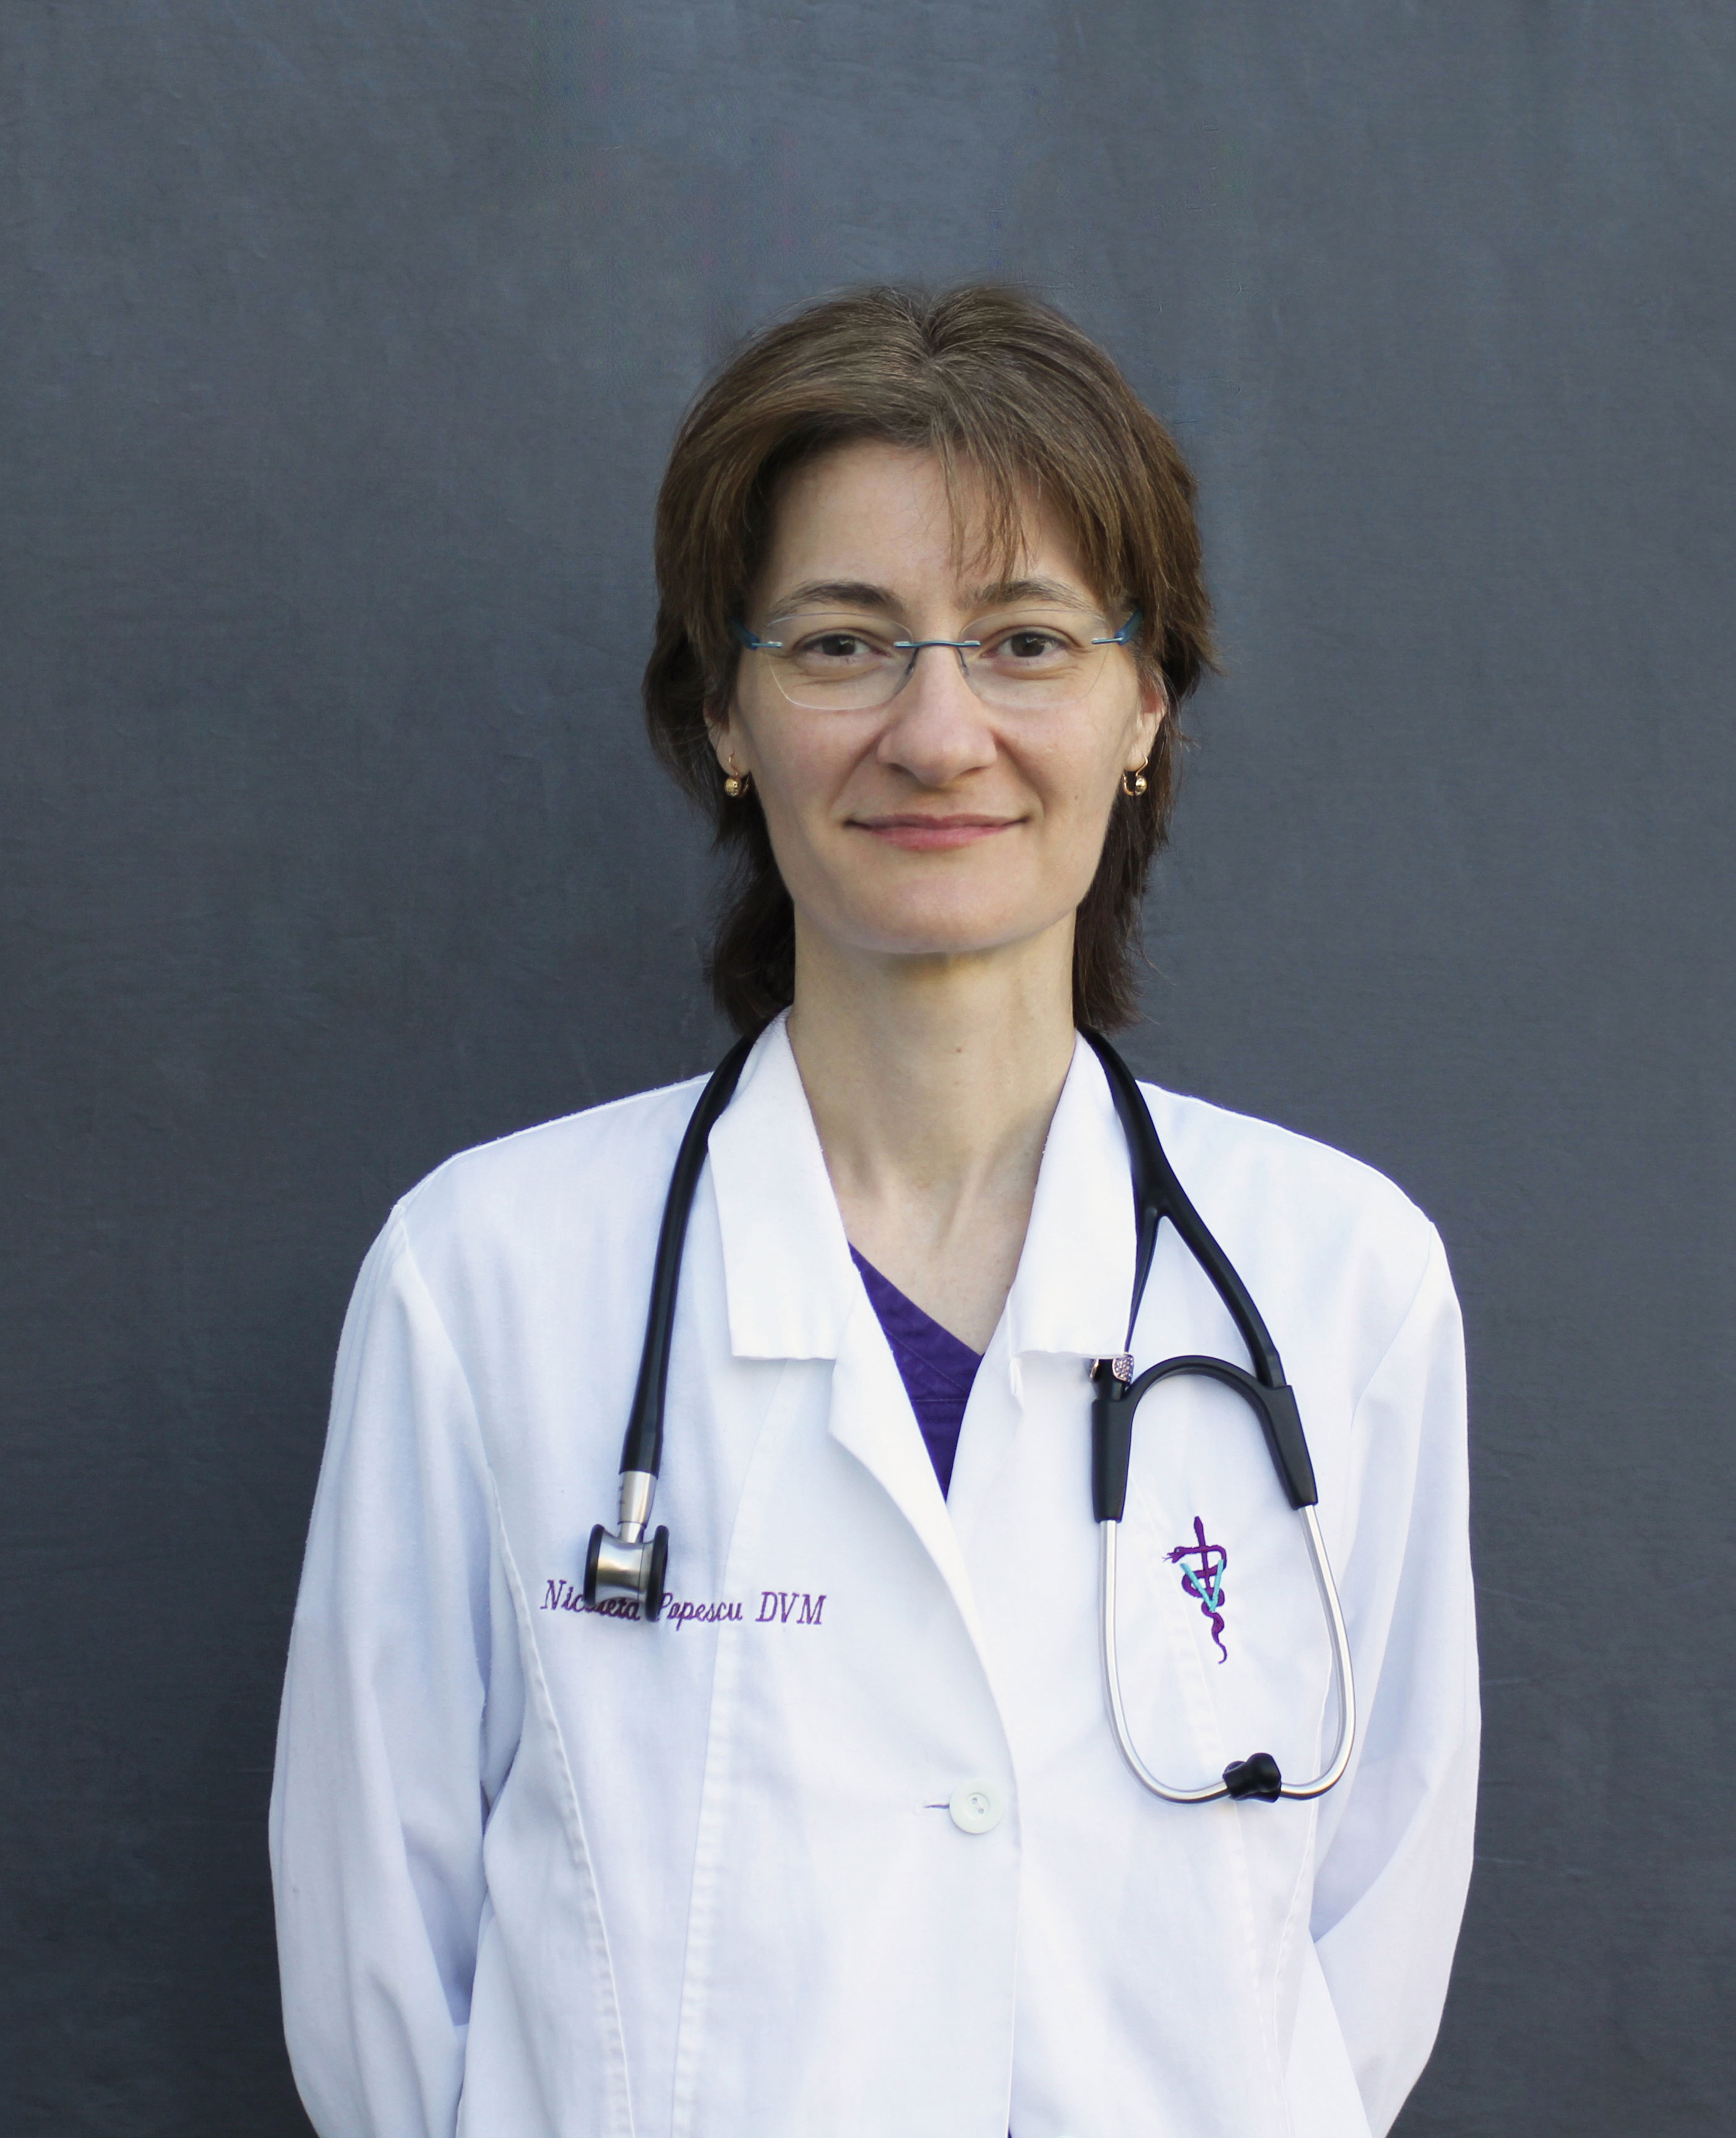 Dr. Nicoleta Popescu, a tall, slim female veterinarian in a white lab coat with a stethescope around her neck. She has short brown hair and wears glasses and purple scrubs.